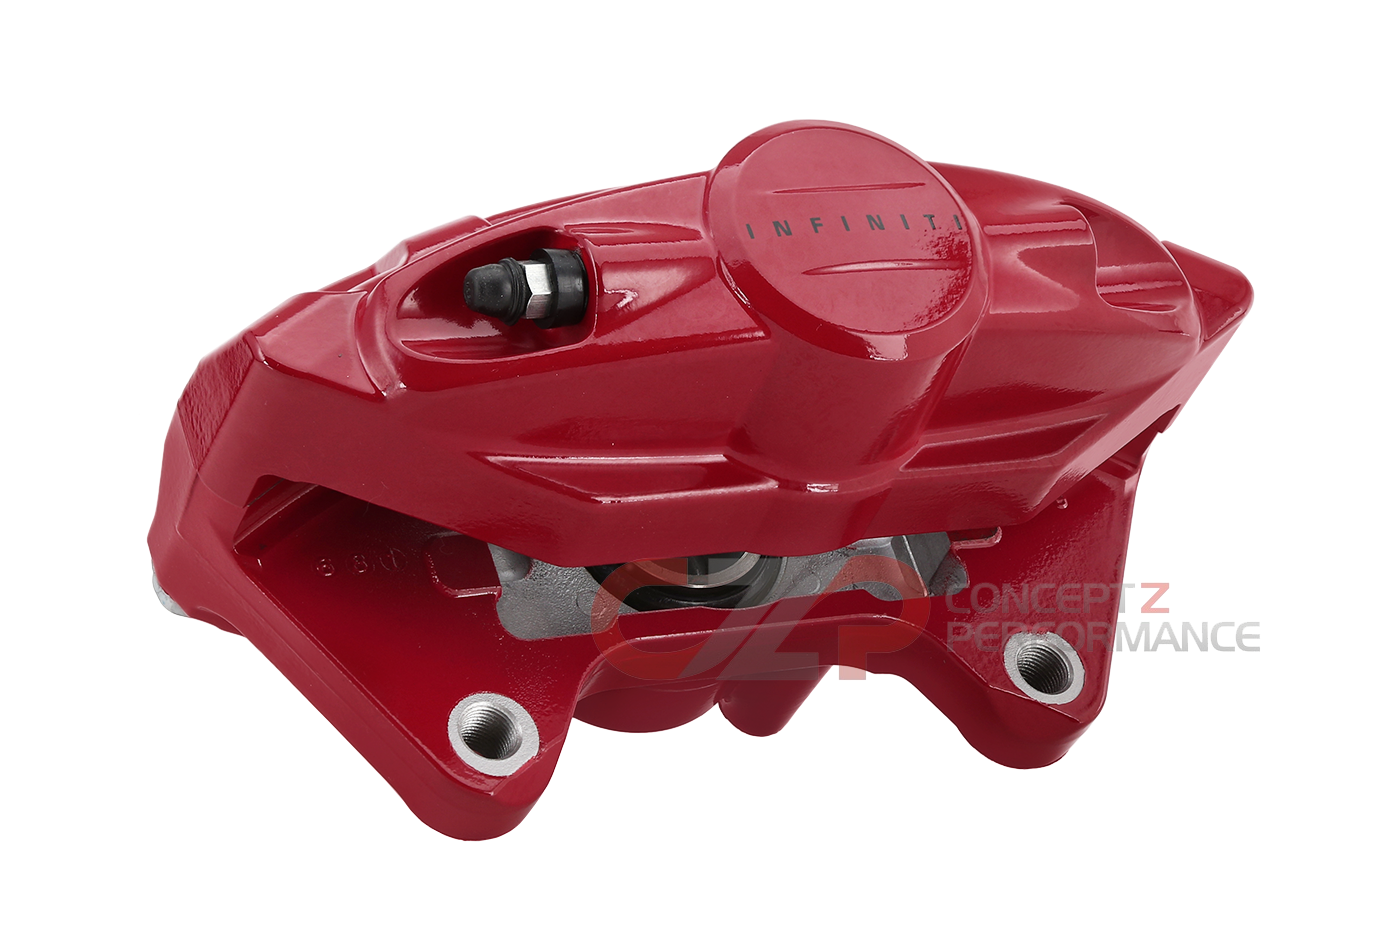 Infiniti OEM Q60 Red Sport Akebono Brake Caliper Assembly, Rear RH - 17+ CV37